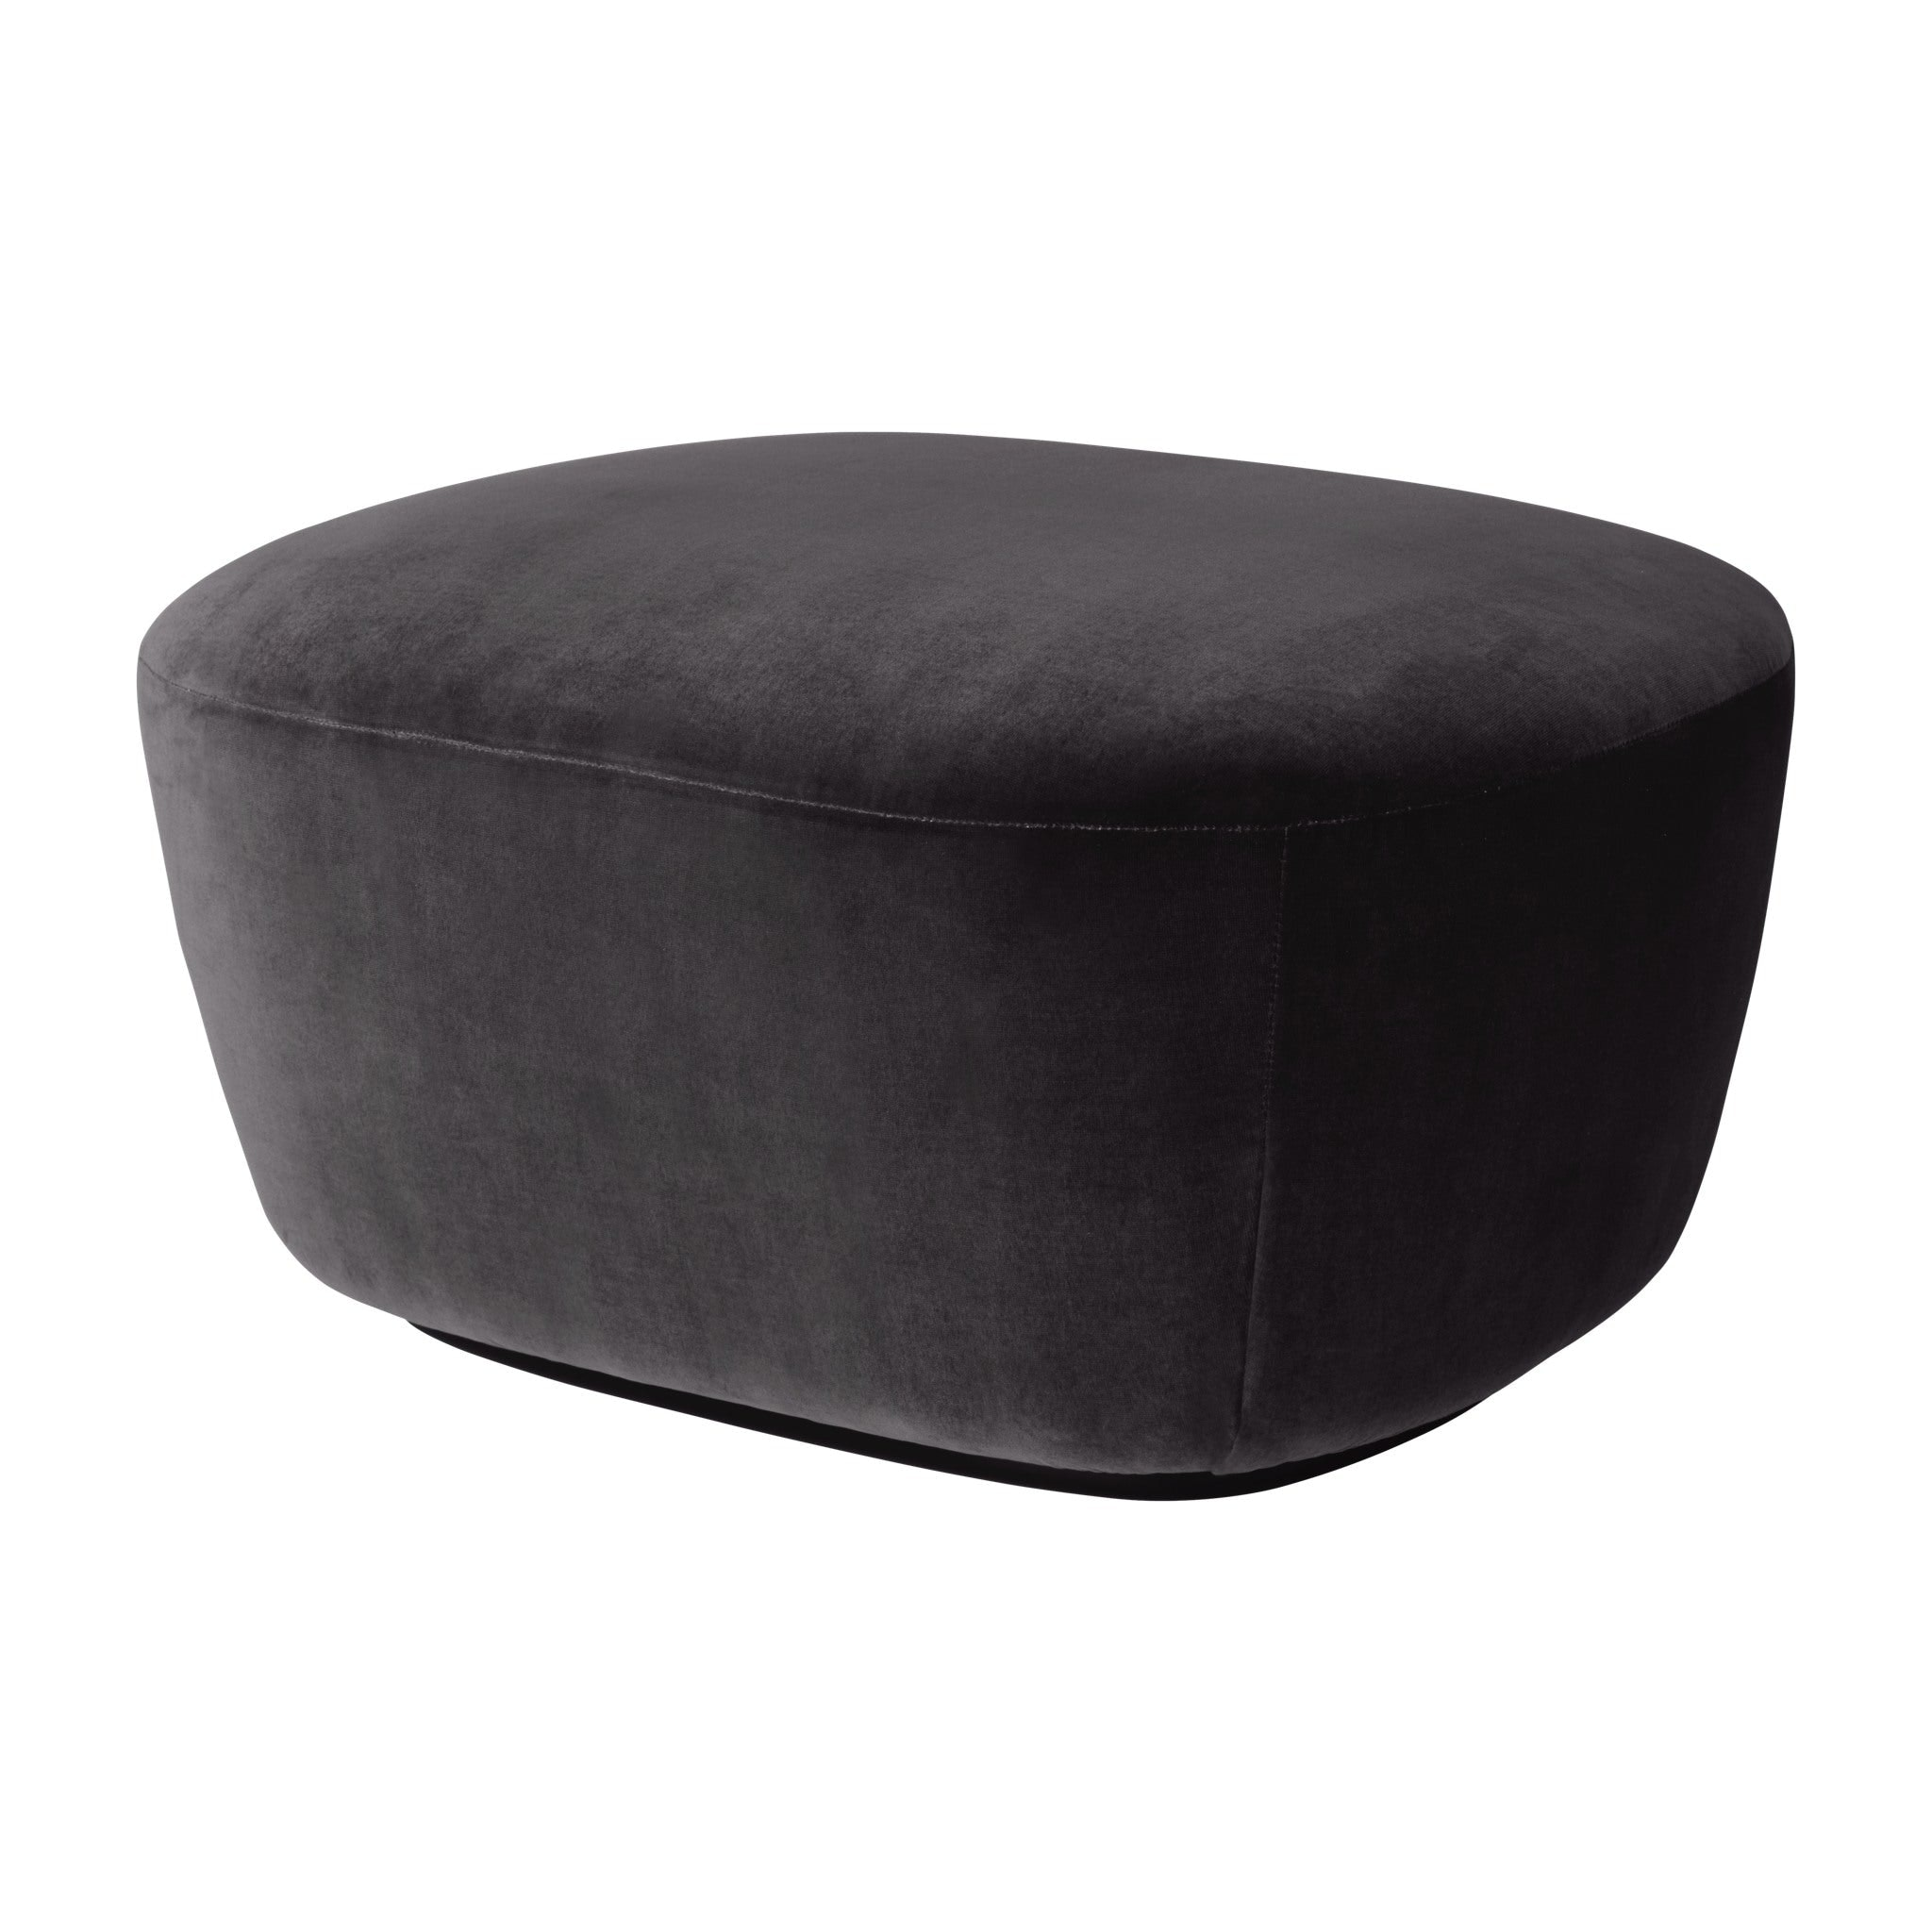 Stay Ottoman by Gubi